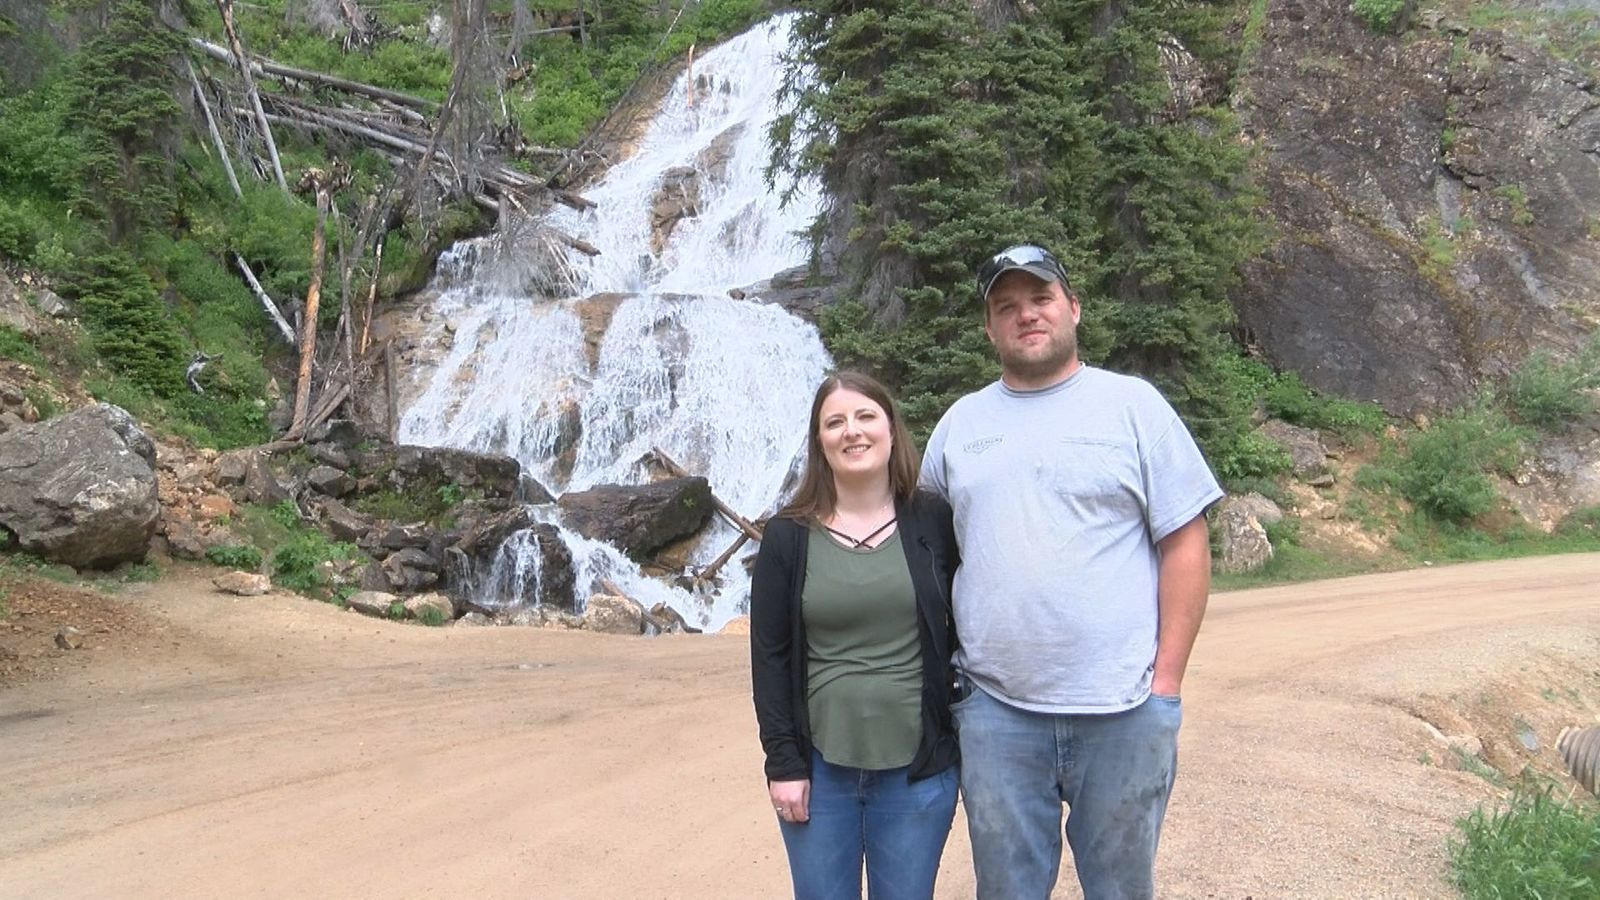 Katelyn and Tyler Harvie of Great Falls enjoy the view and the drive over Skalkaho Pass. The couple likes to make a trip to see the falls at least once a year.{ }